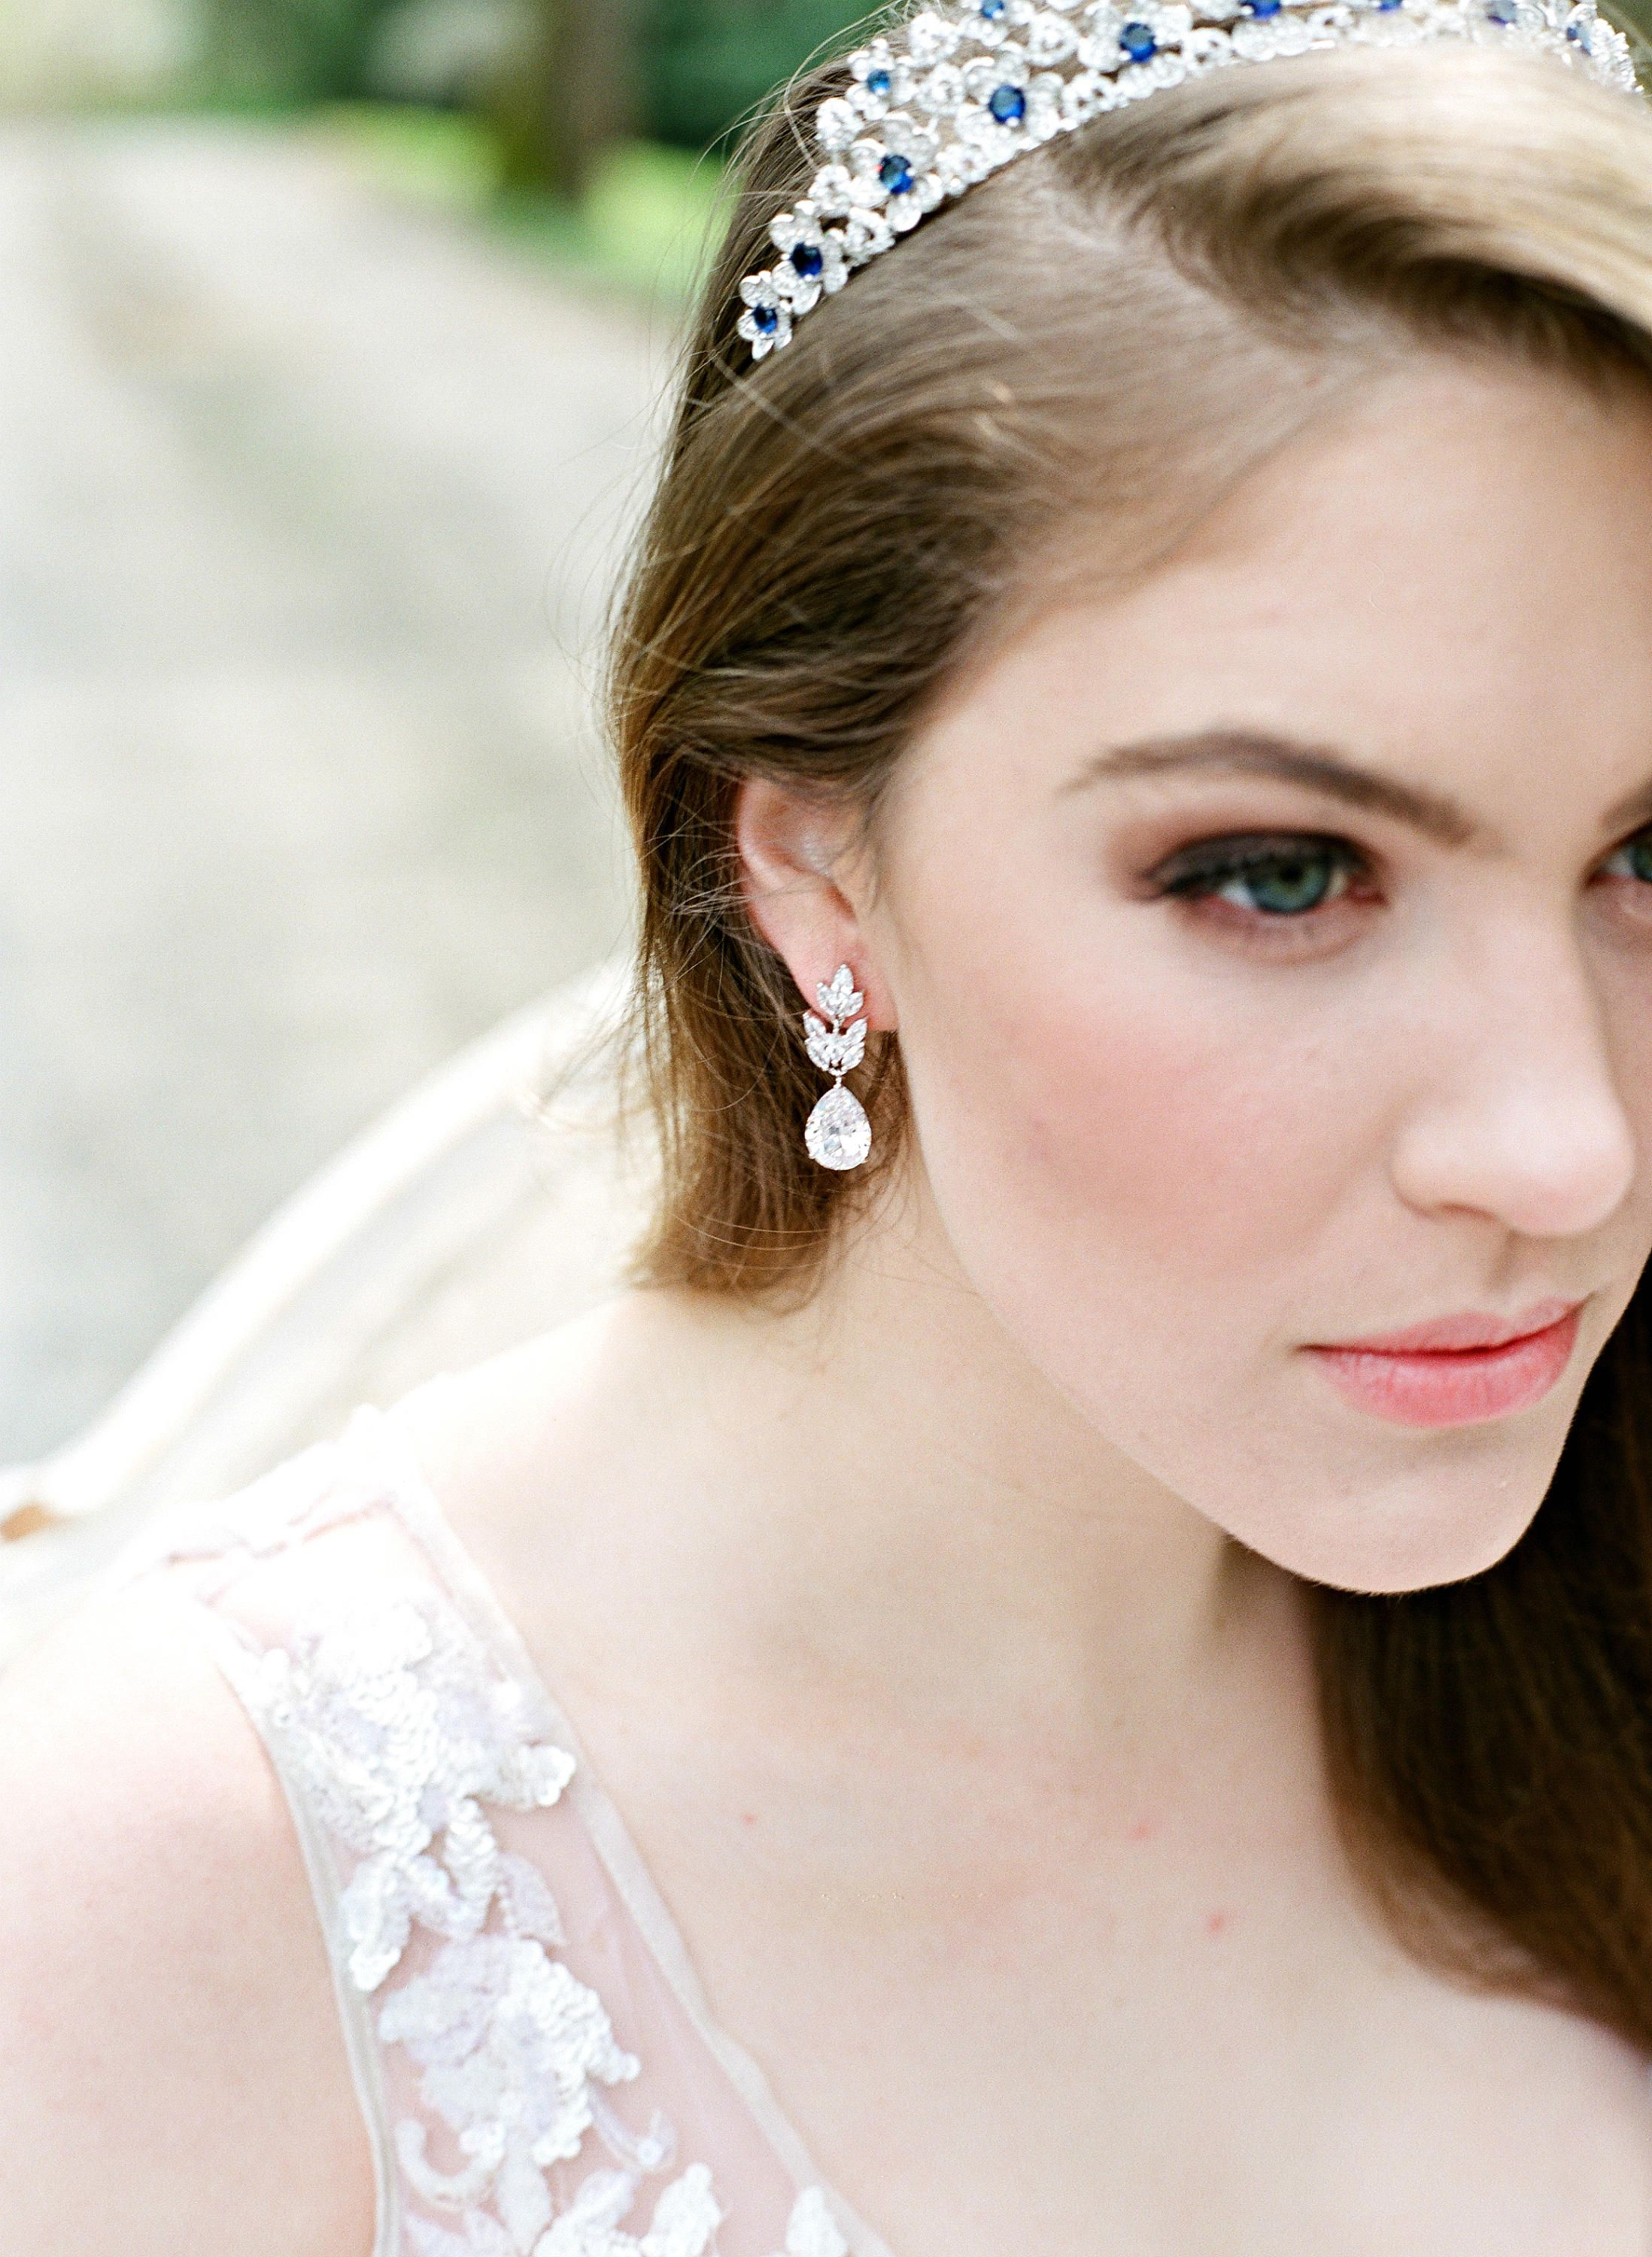 bec esme hitched from dress wedding earrings chez bridal for perfect